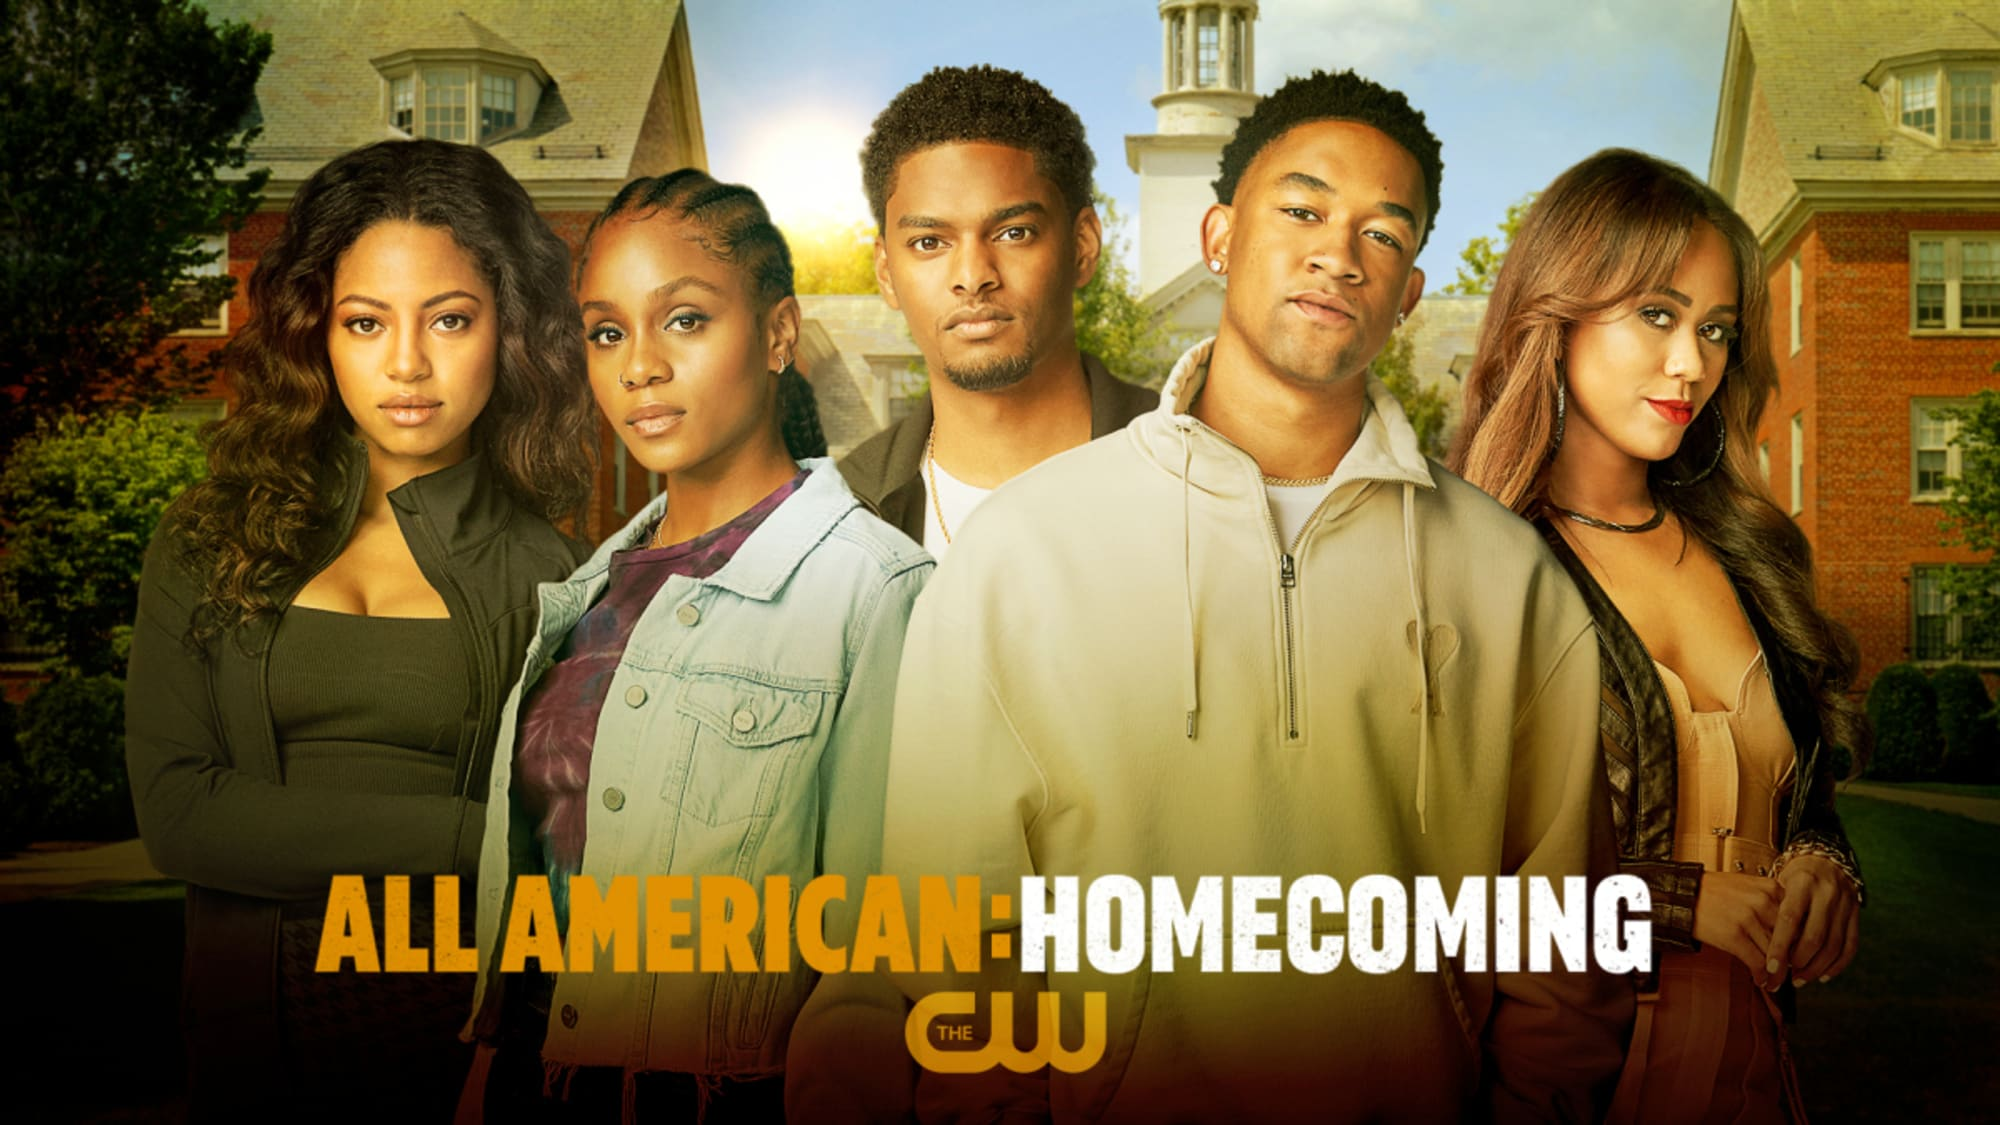 """The Ivy League reigns on TV. """"All American"""" spinoff, 'Homecoming', wants to make HBCUs 'the A story'"""